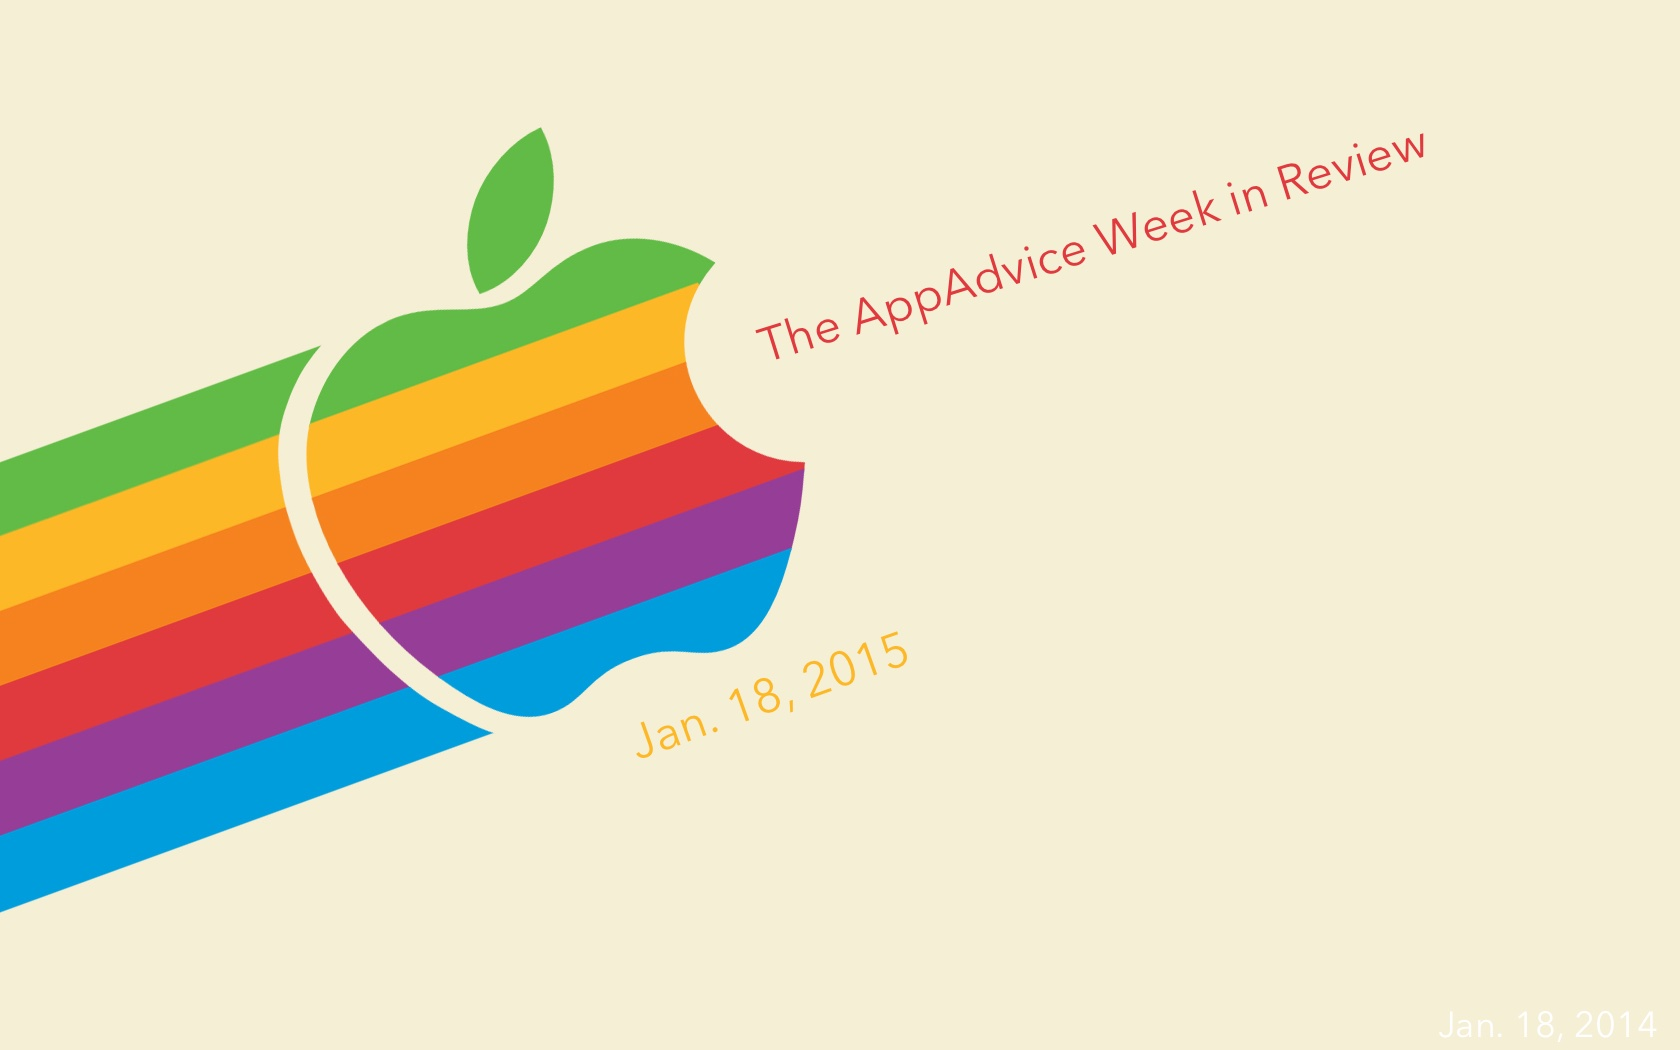 The AppAdvice week in review: Is the Apple Watch doomed?